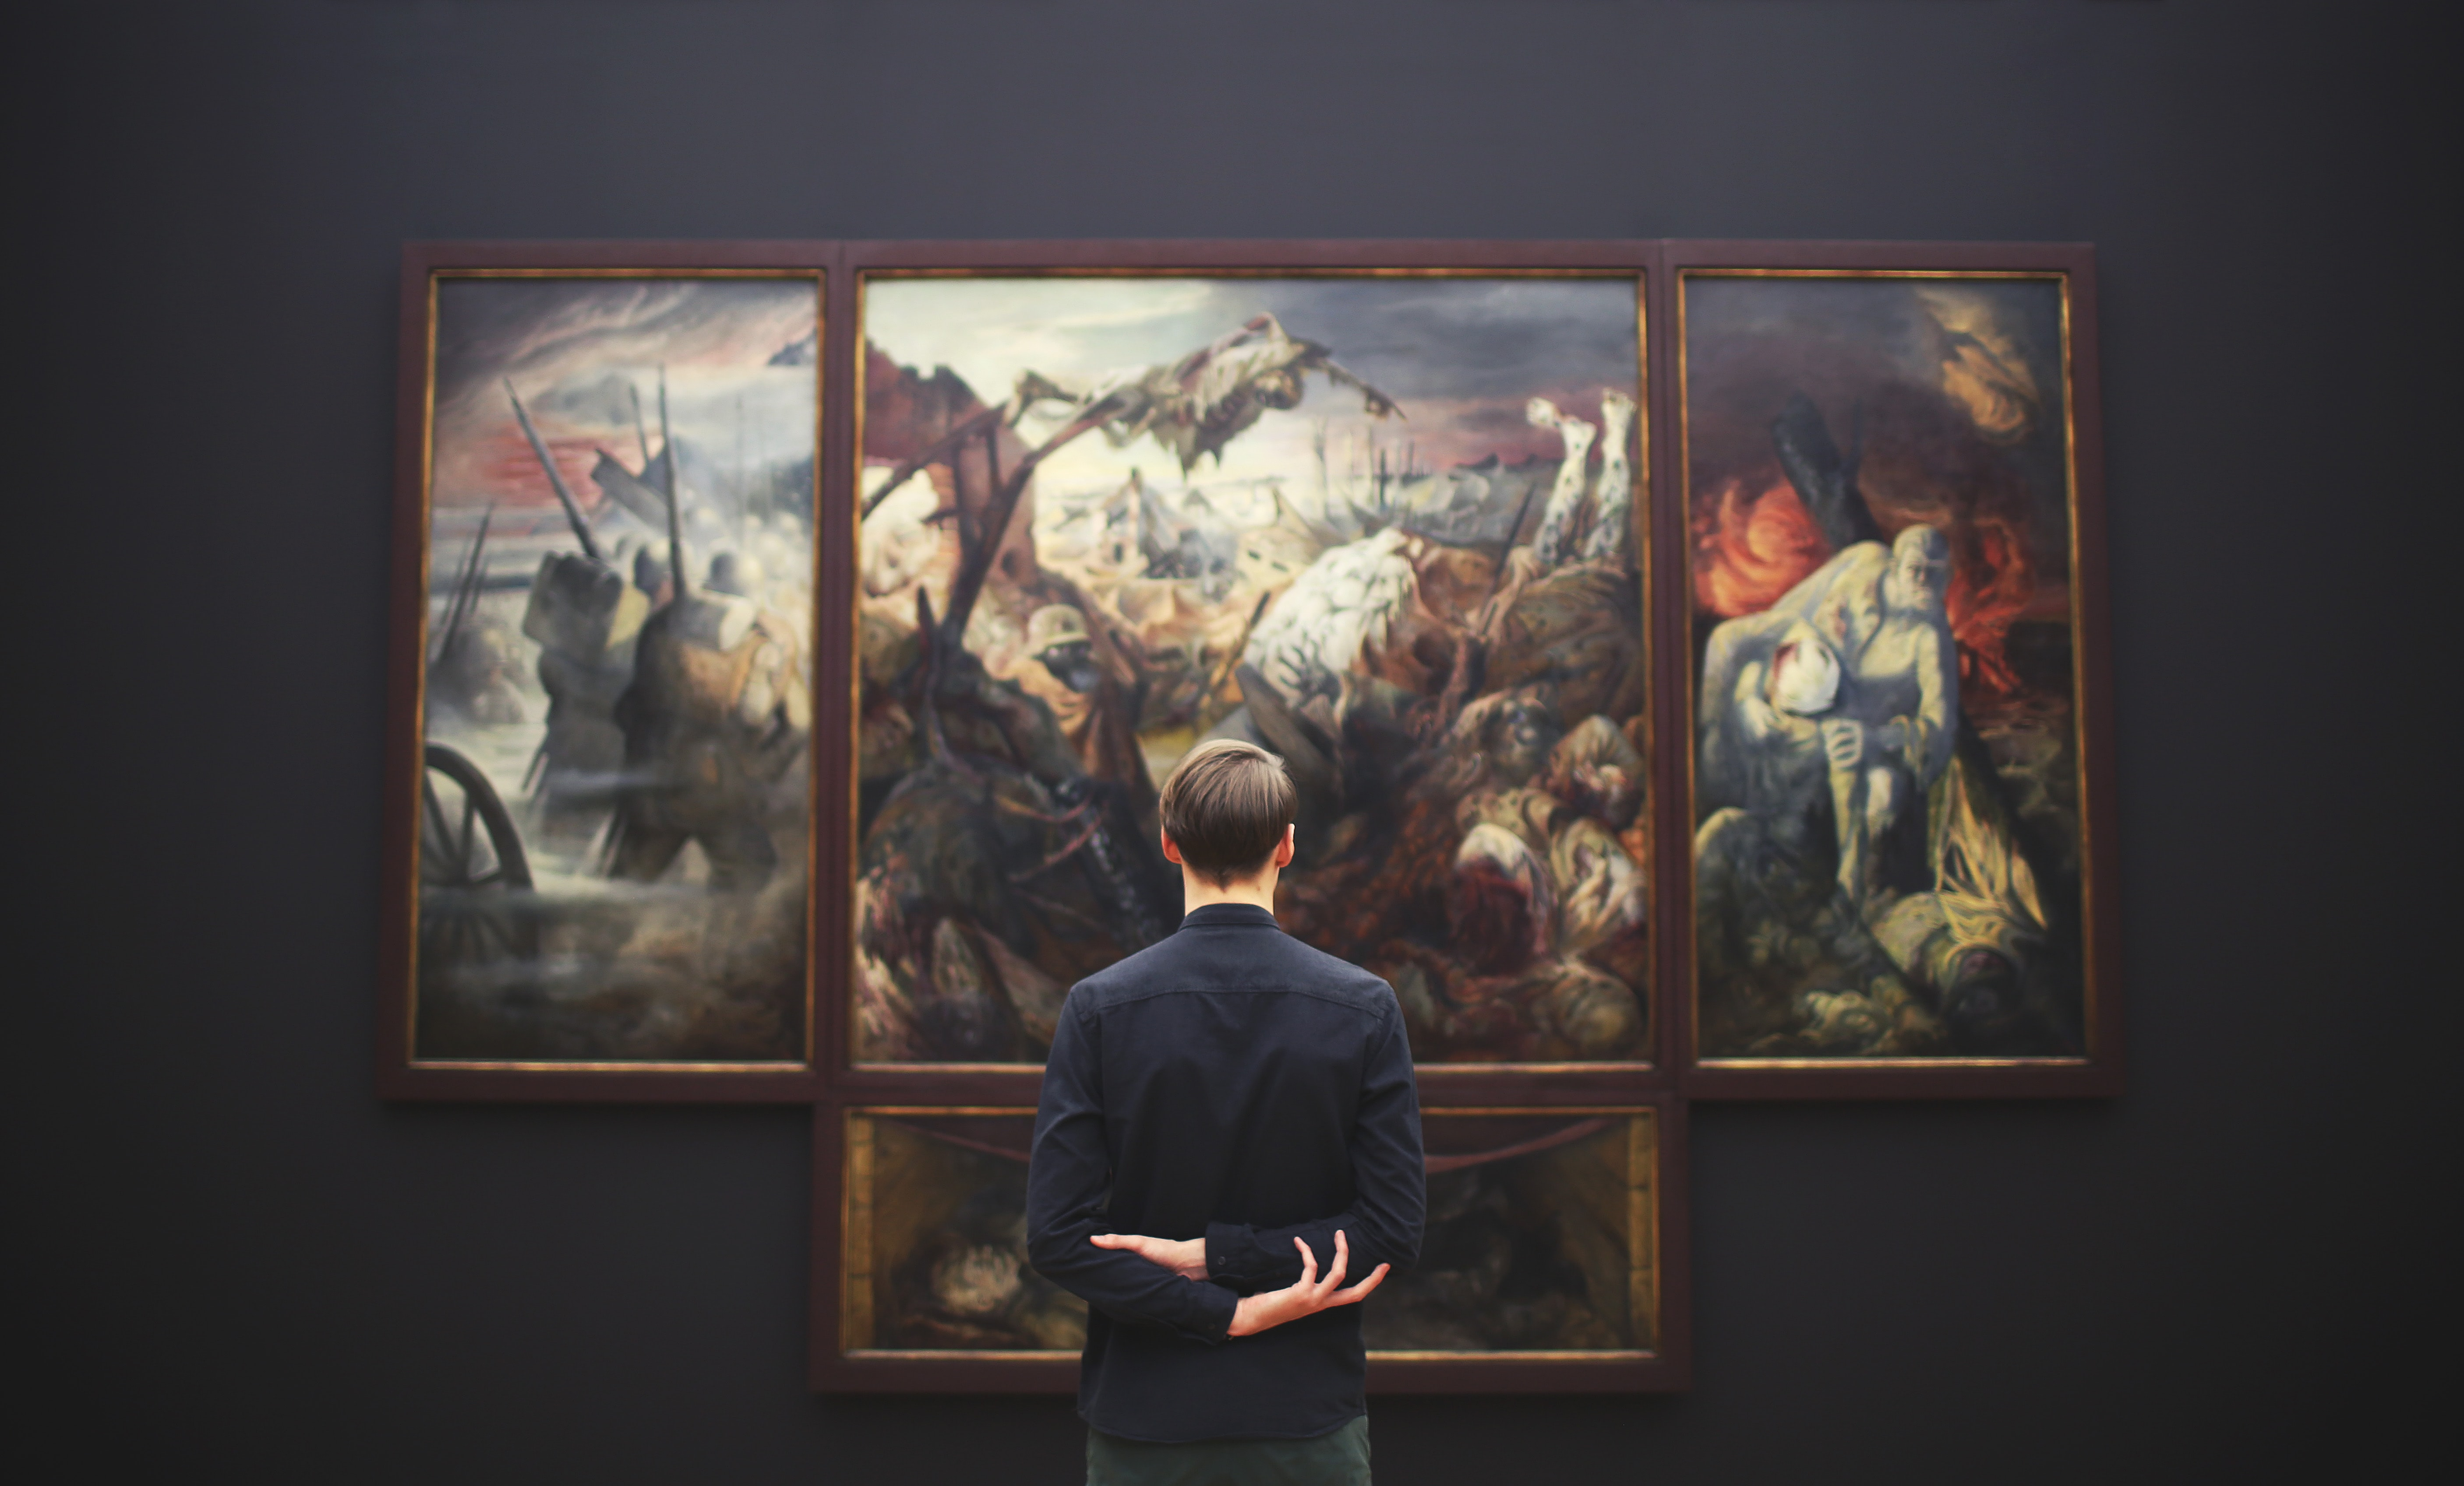 Wide angle shot of a man from behind, who is looking at a large painting in a museum.